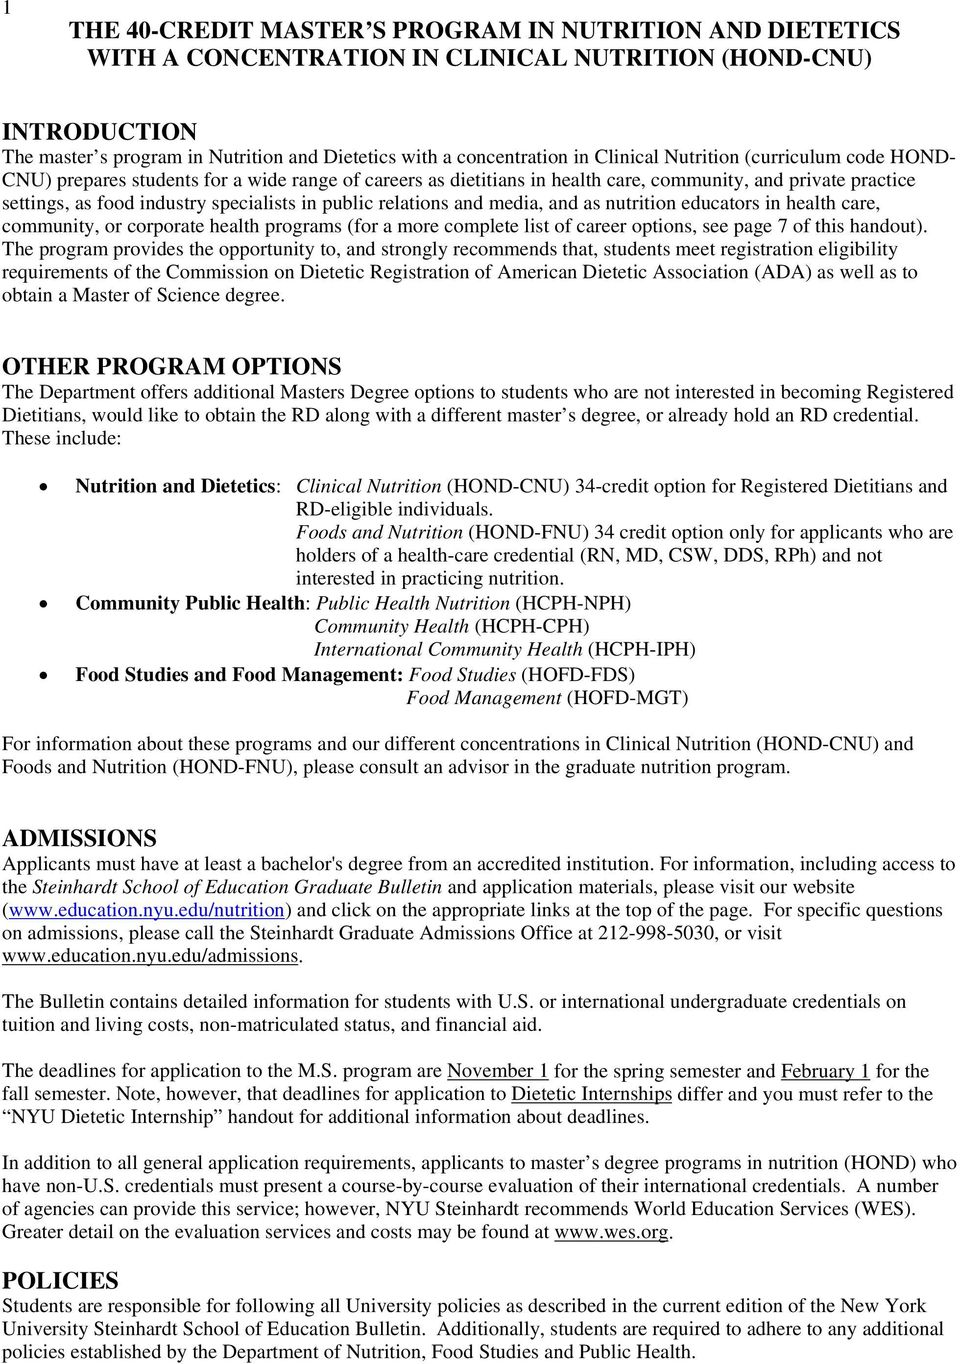 public relations and media, and as nutrition educators in health care, community, or corporate health programs (for a more complete list of career options, see page 7 of this handout).